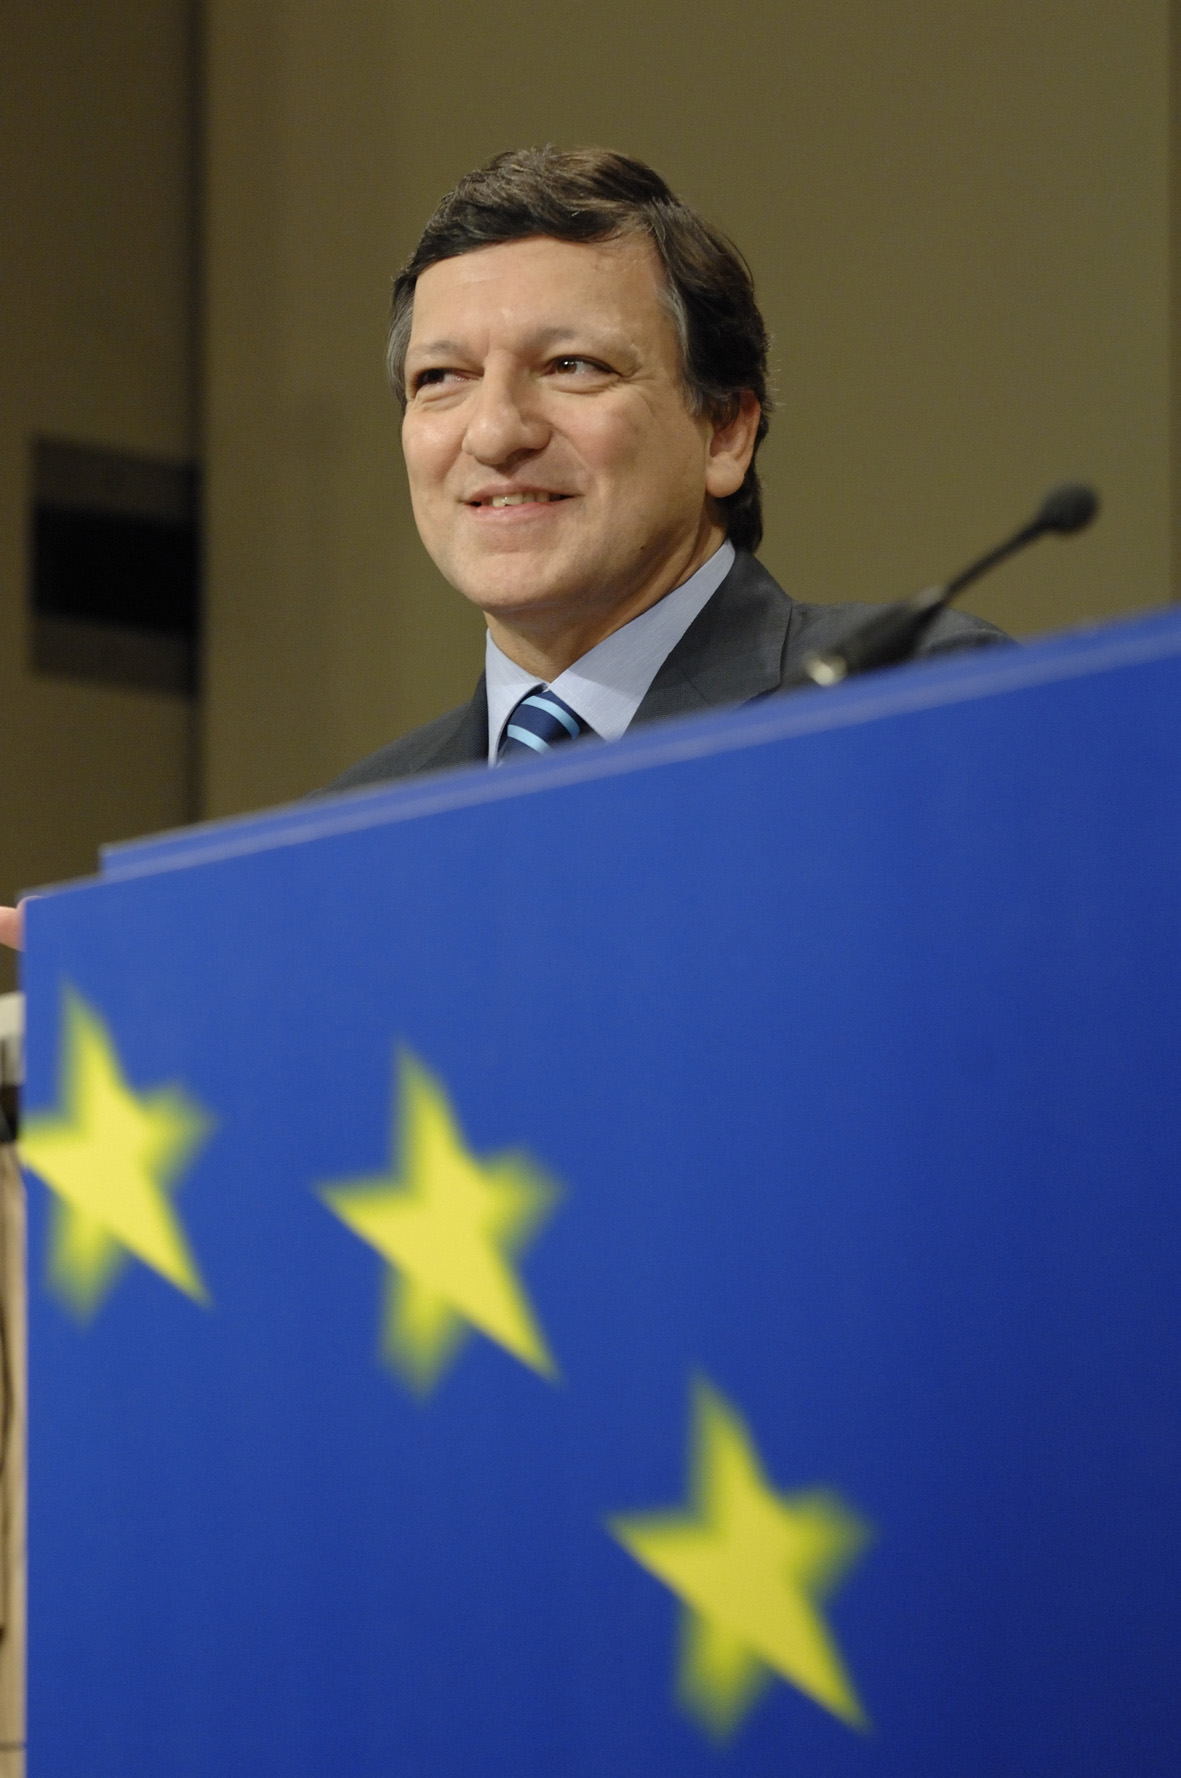 Joint Press conference by José Manuel Barroso, President of the EC, and Louis Michel, Member of the EC, on the EU-Africa Summit